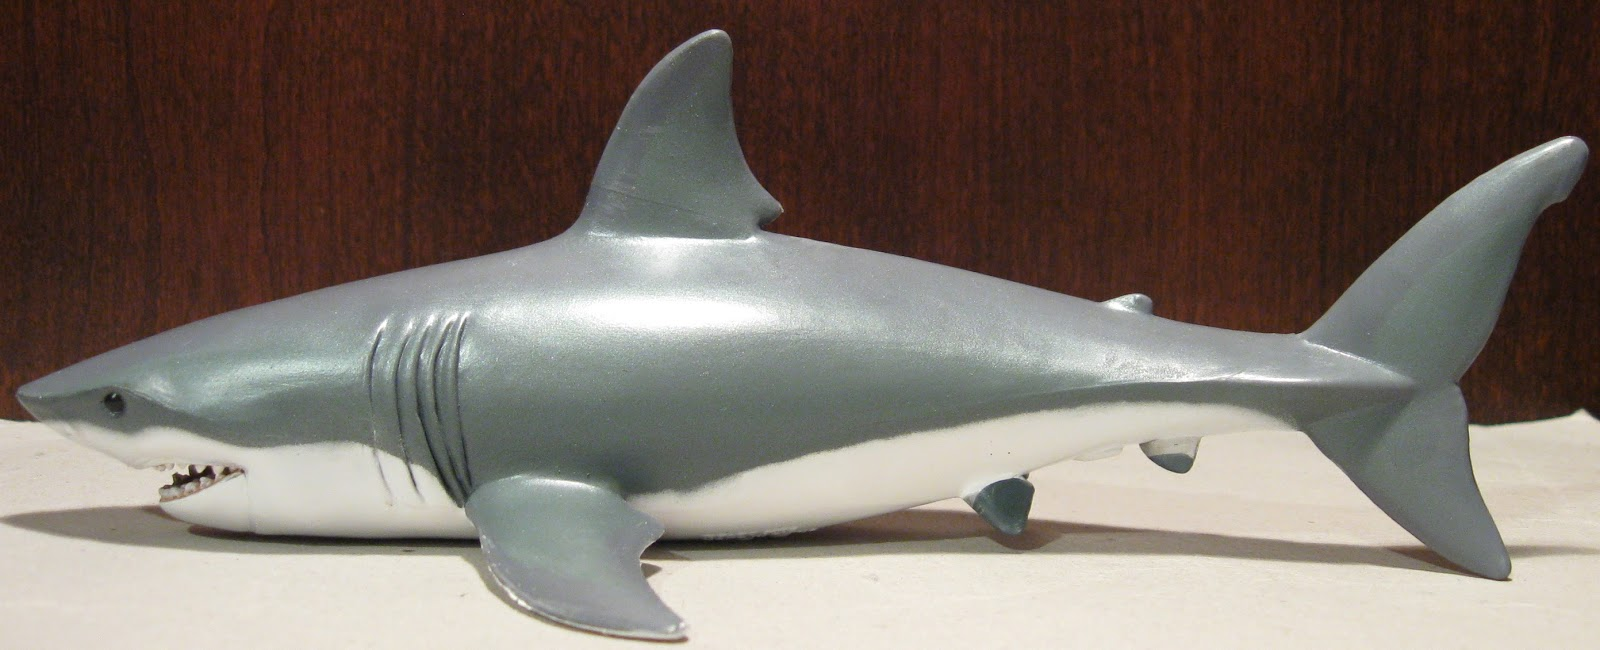 Cool Shark Toys : The toyseum great white shark papo figure